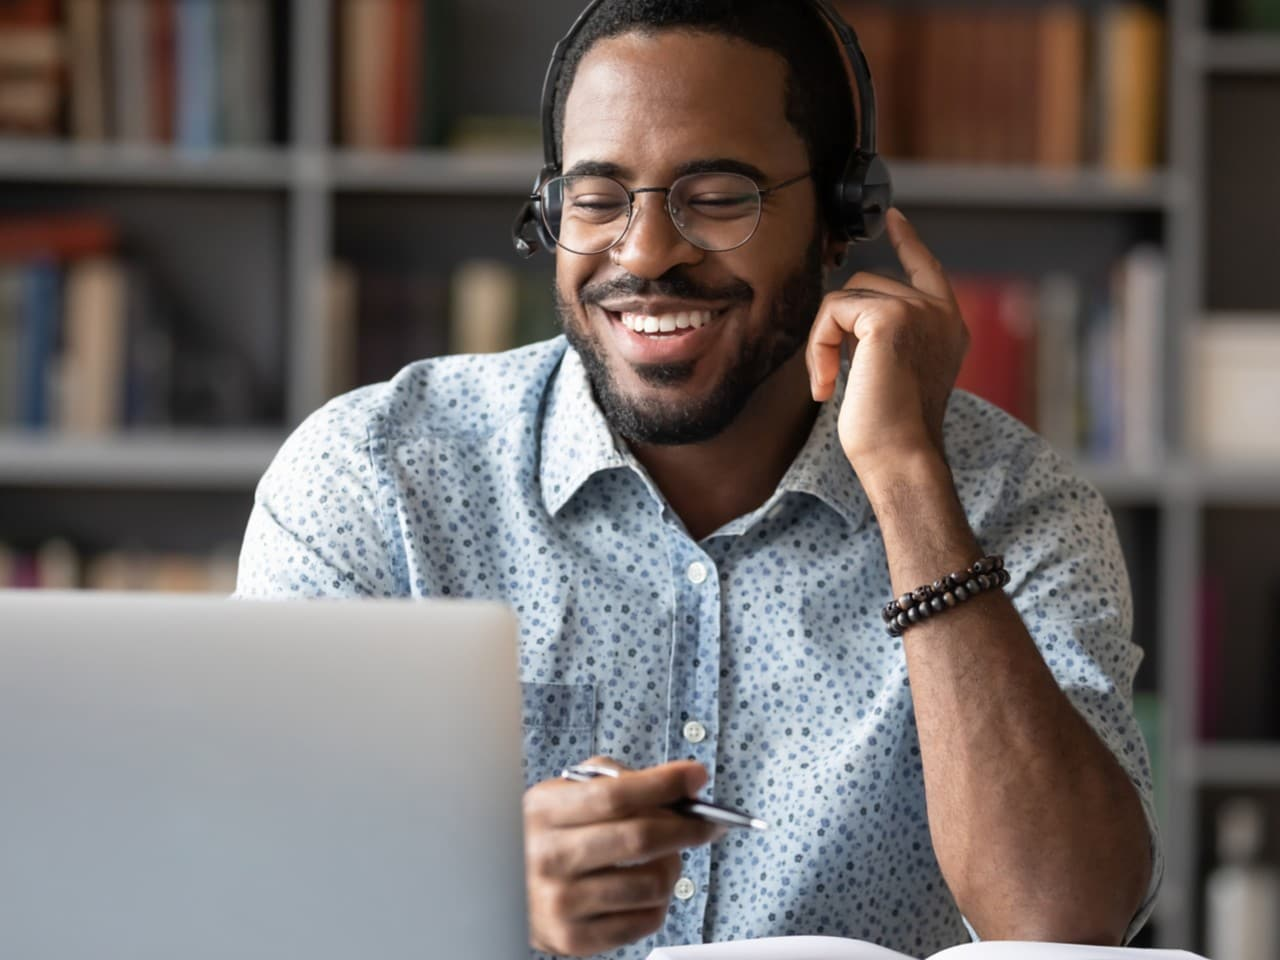 Man with glasses smiling at a desk with headset on